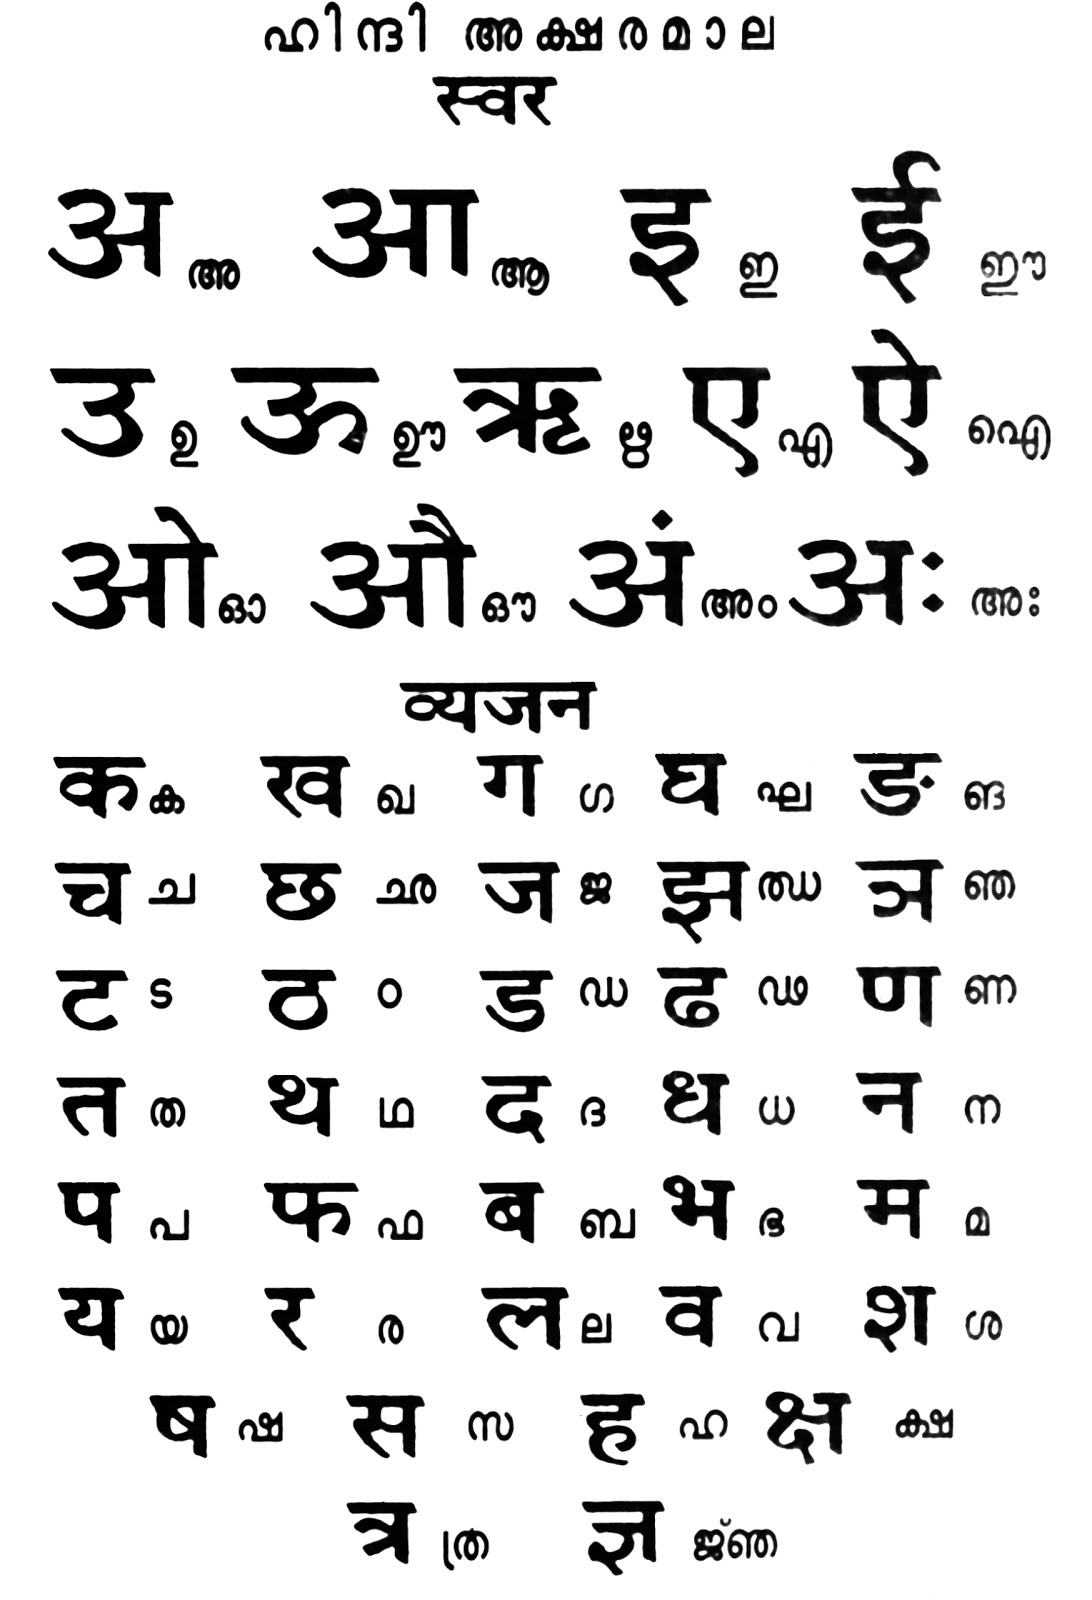 Hindi Malayalam Alphabets